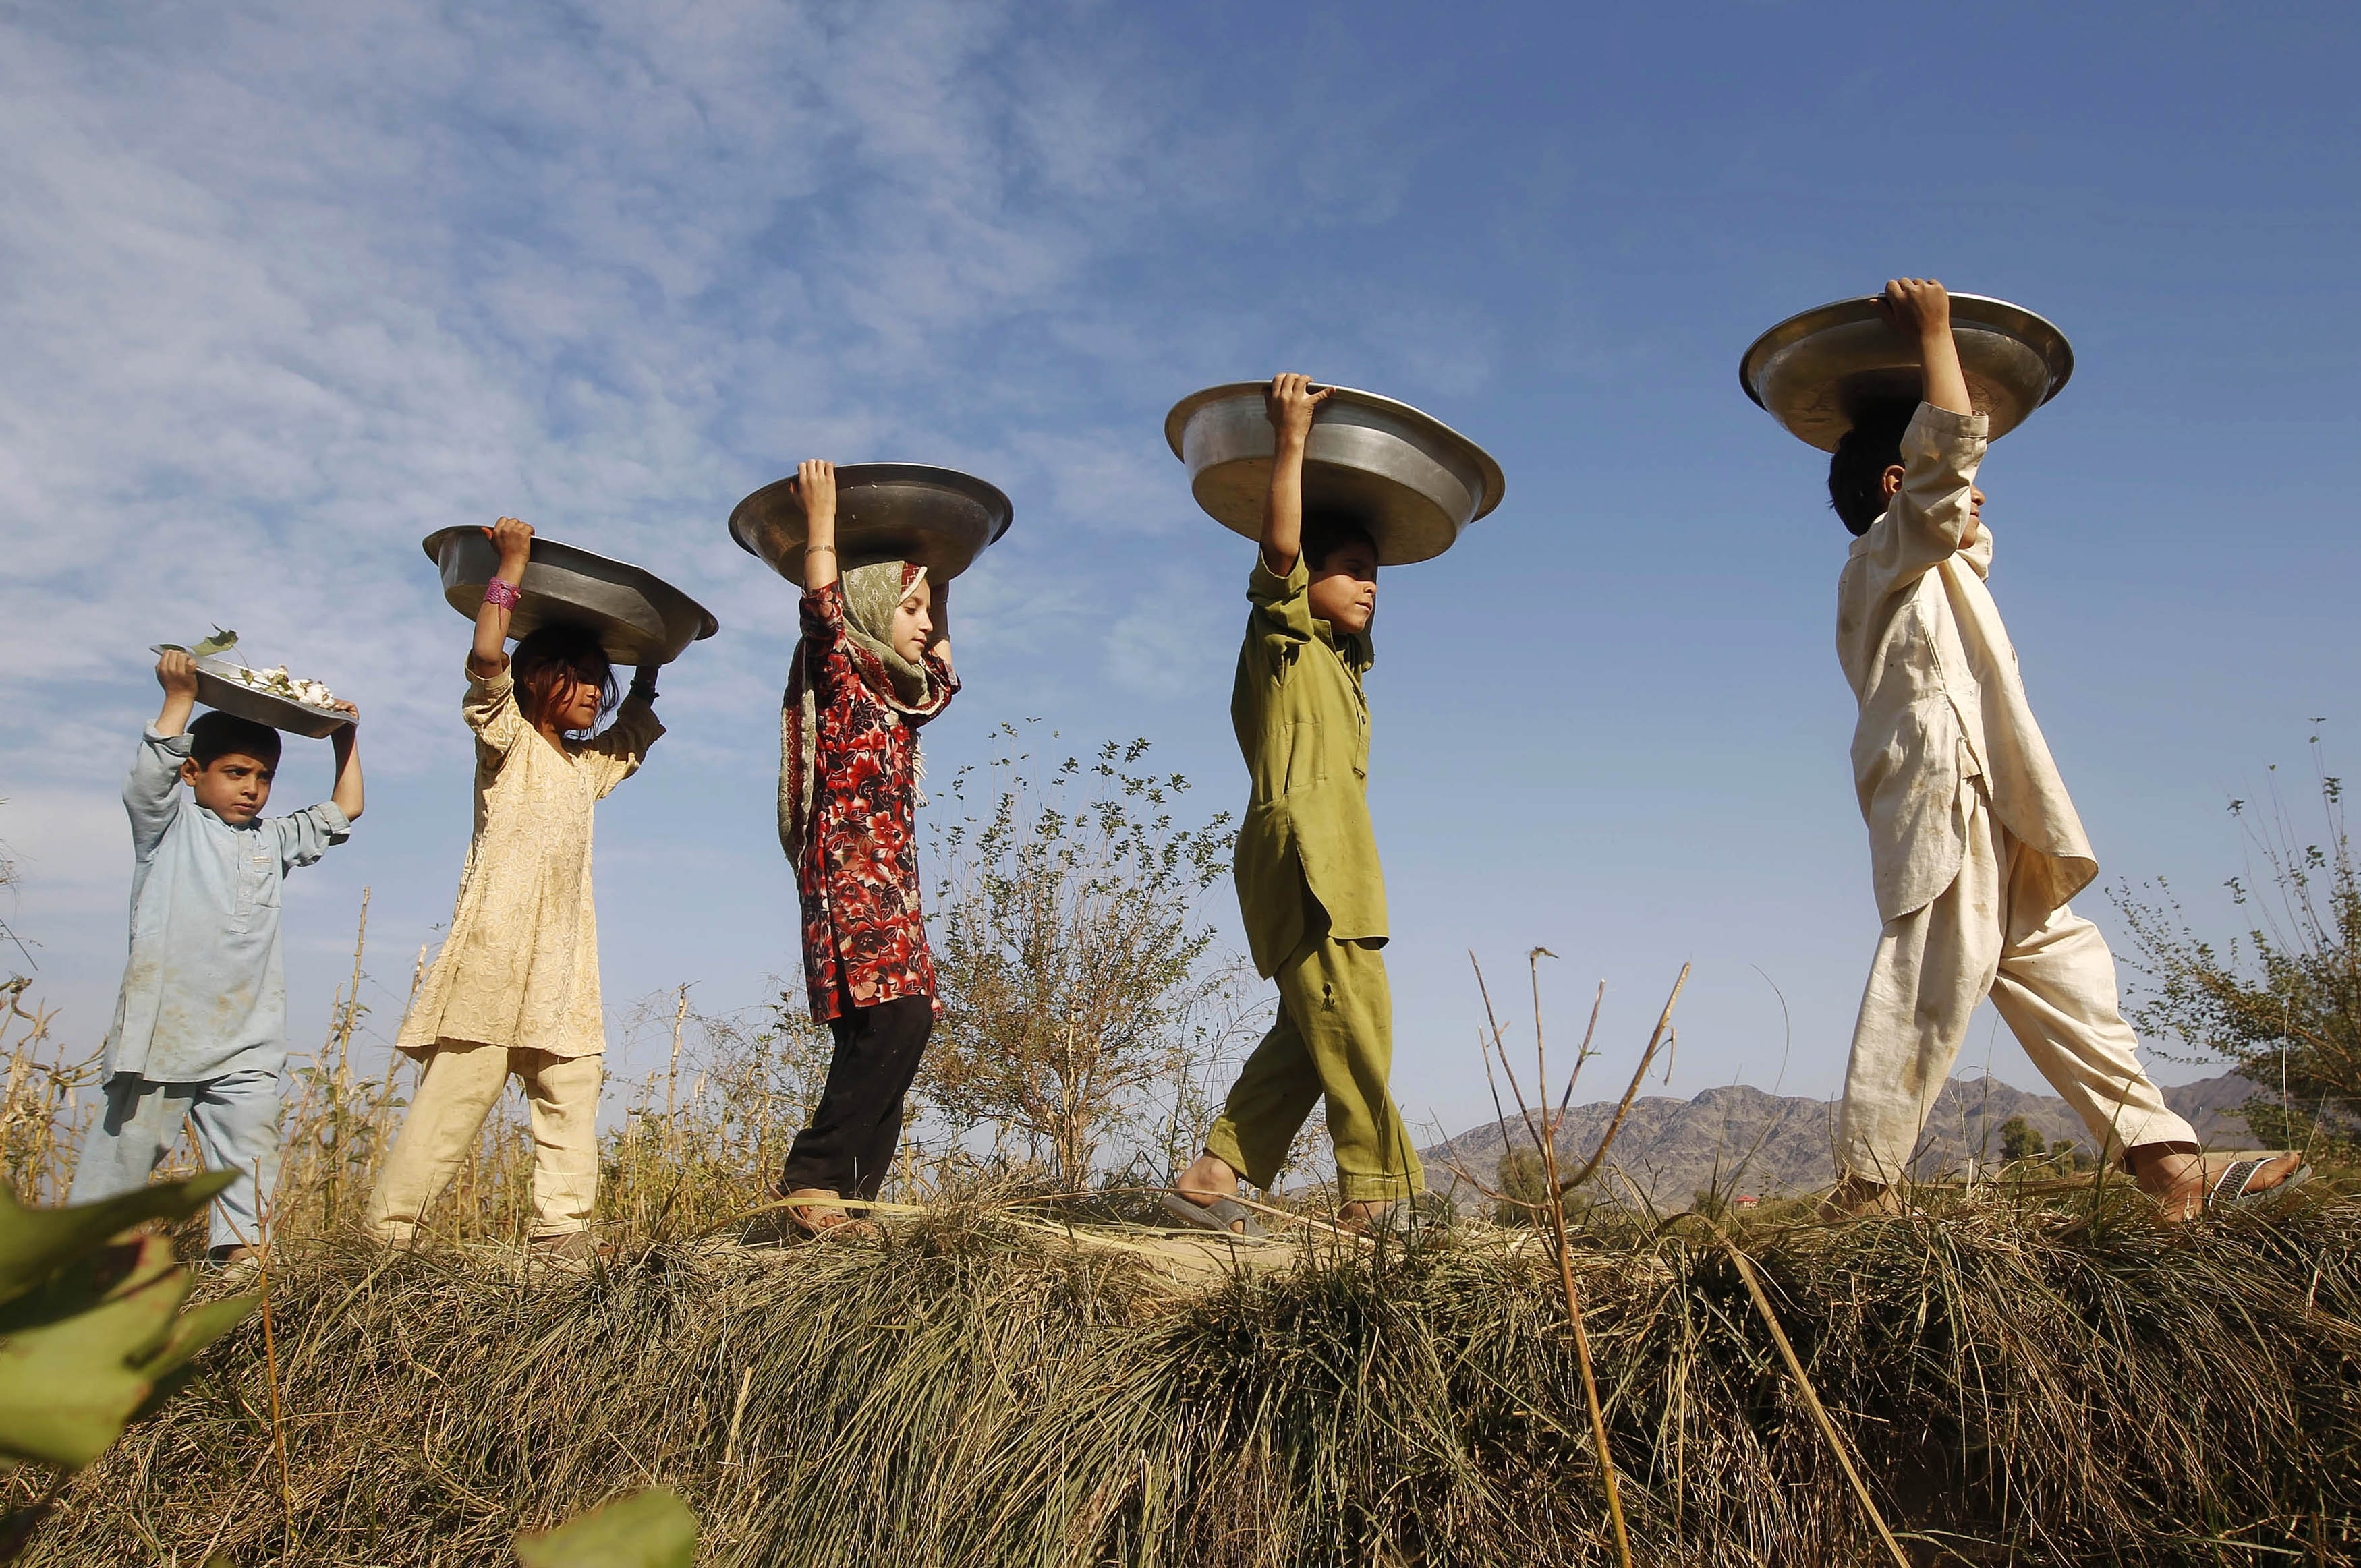 Afghan children walk out of a field as they carry cotton clumps in containers balanced on their heads on the outskirts of Jalalabad province, November 5, 2012. REUTERS/Parwiz (AFGHANISTAN - Tags: AGRICULTURE BUSINESS COMMODITIES SOCIETY) - GM1E8B51Q7R01